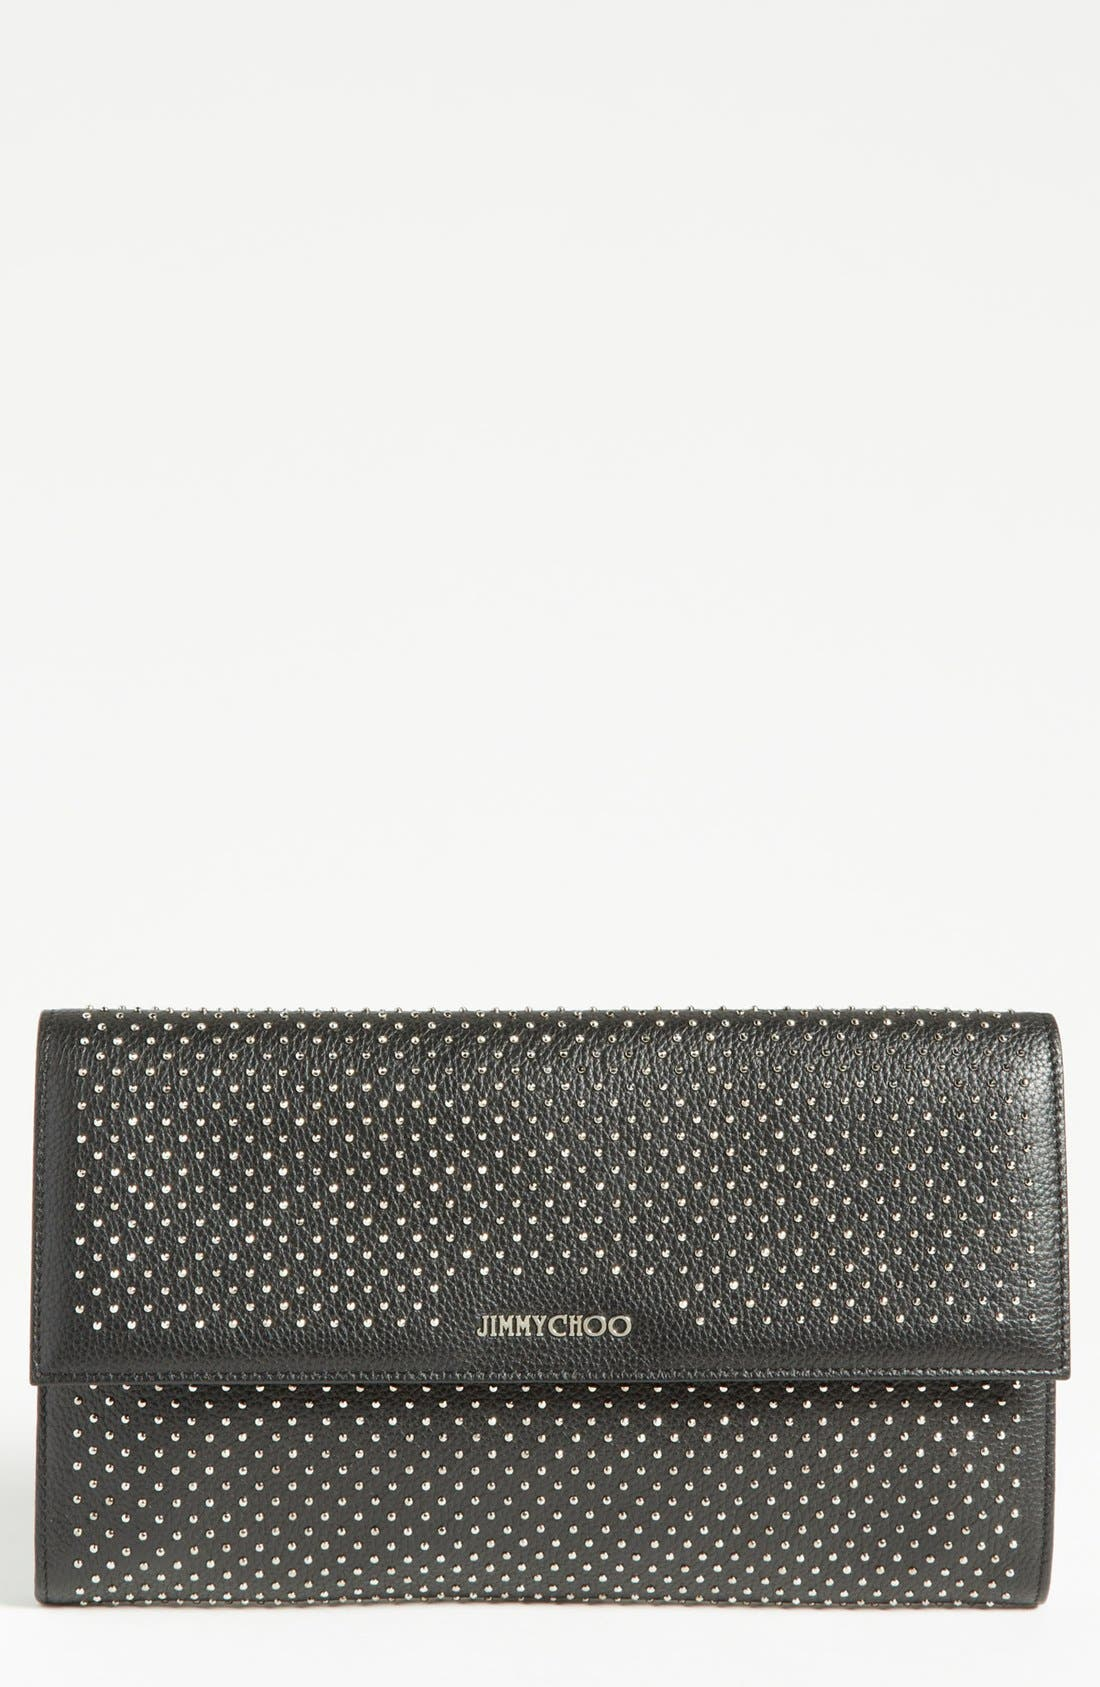 Main Image - Jimmy Choo 'Reese - XL' Studded Leather Clutch